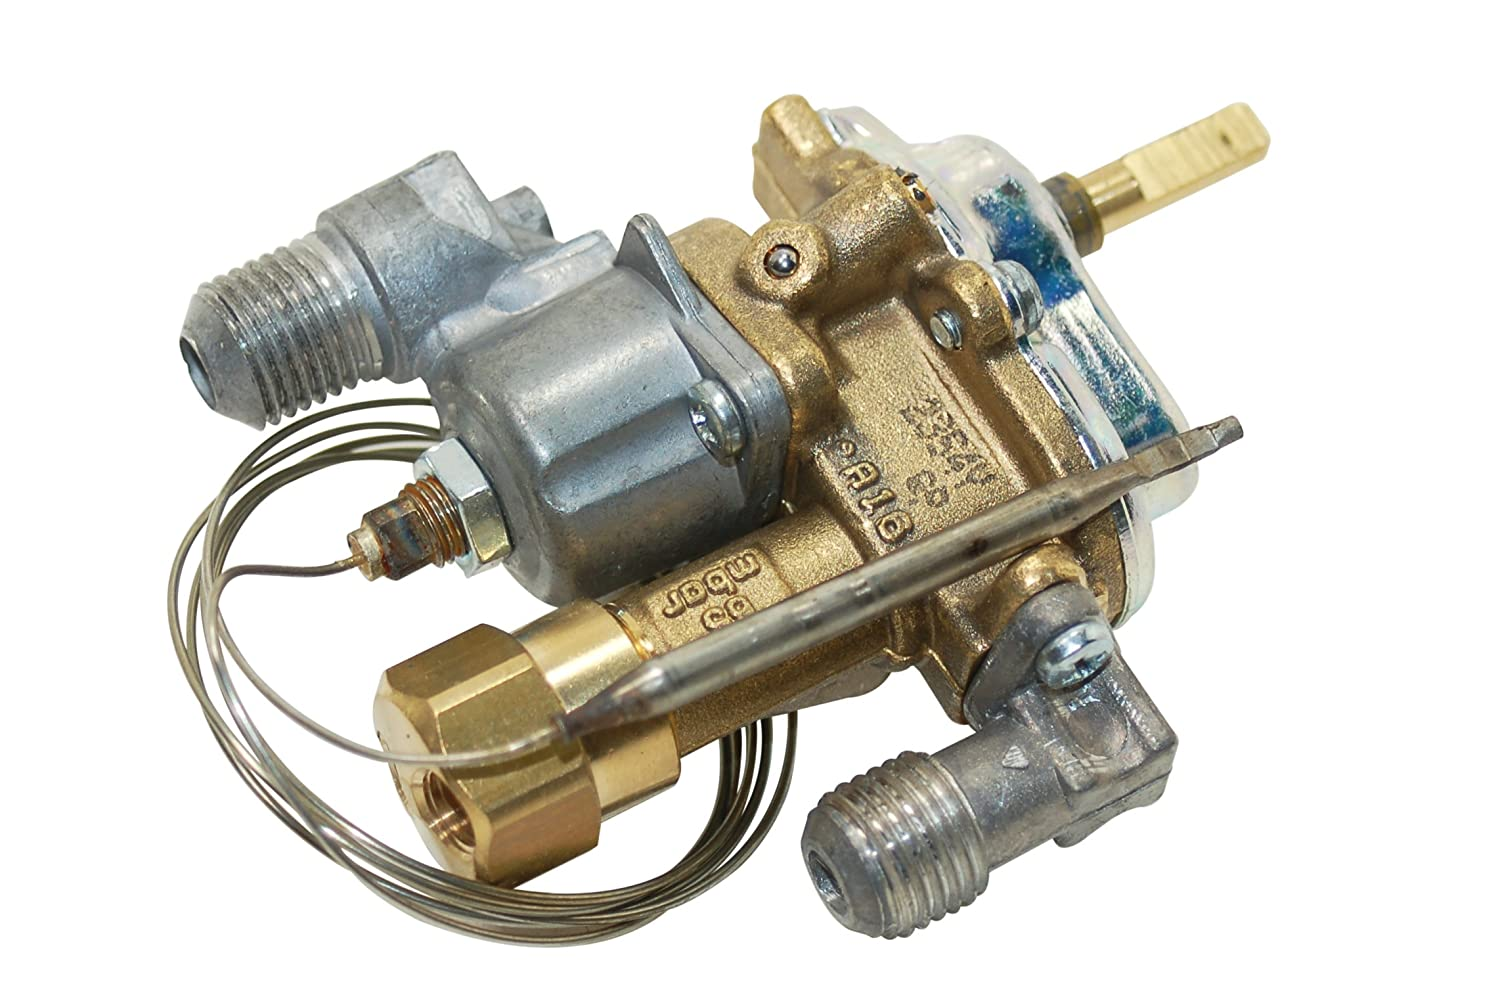 Genuine Swan Oven Main Oven Thermostat